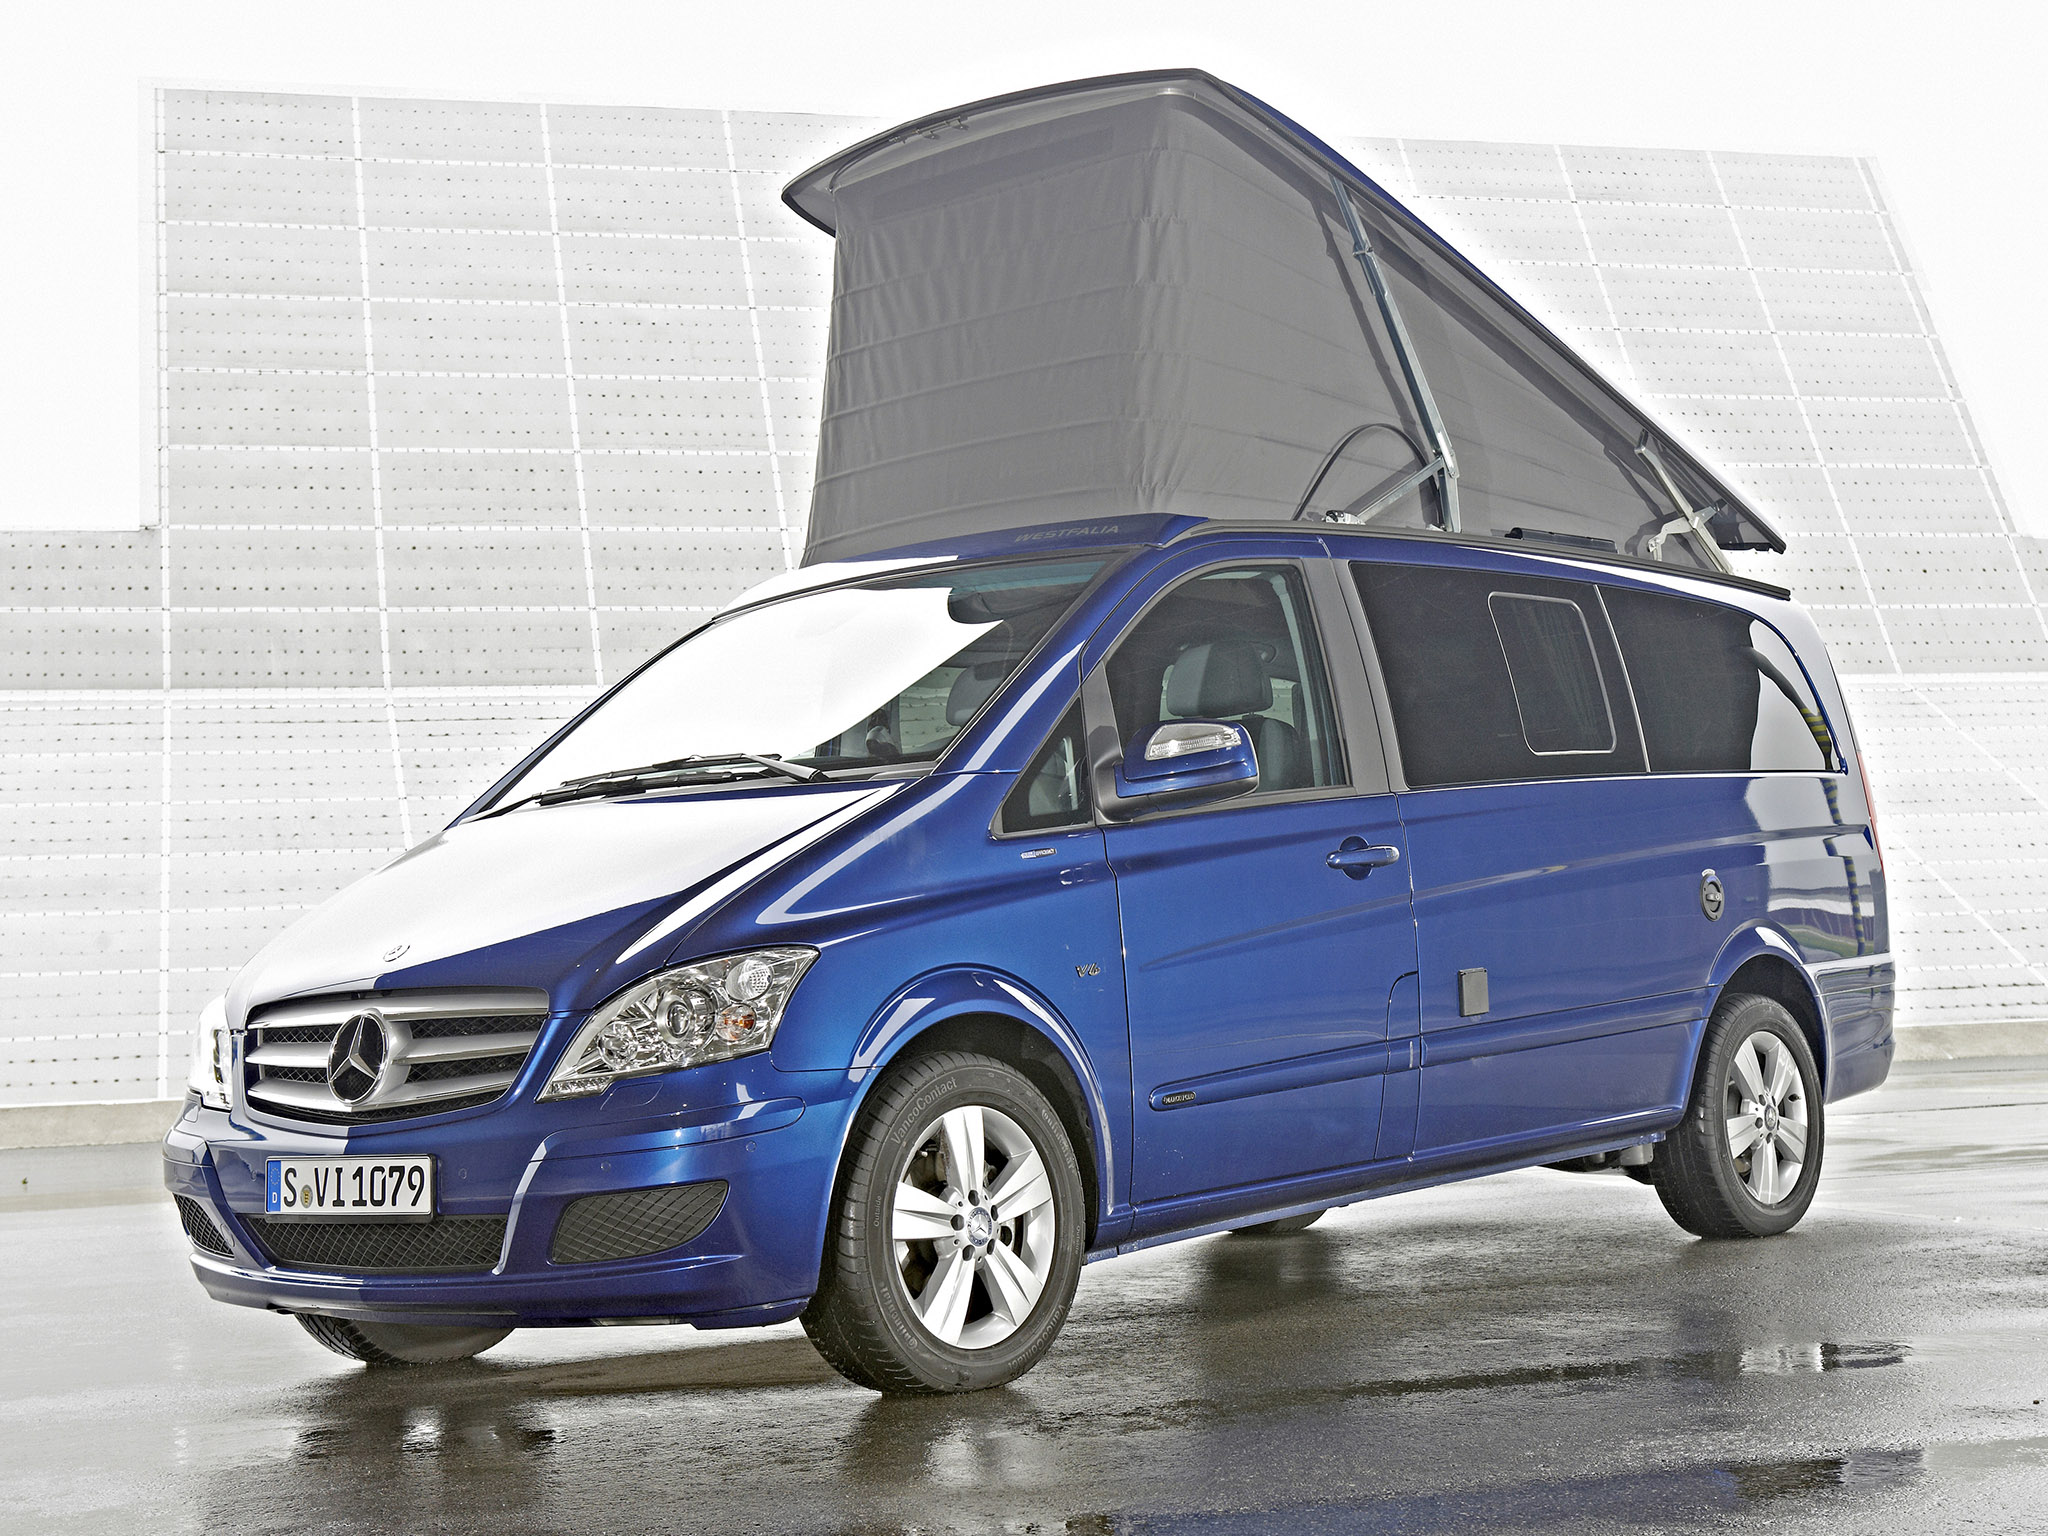 mercedes viano marco polo 2010 mercedes viano marco polo 2010 photo 10 car in pictures car. Black Bedroom Furniture Sets. Home Design Ideas